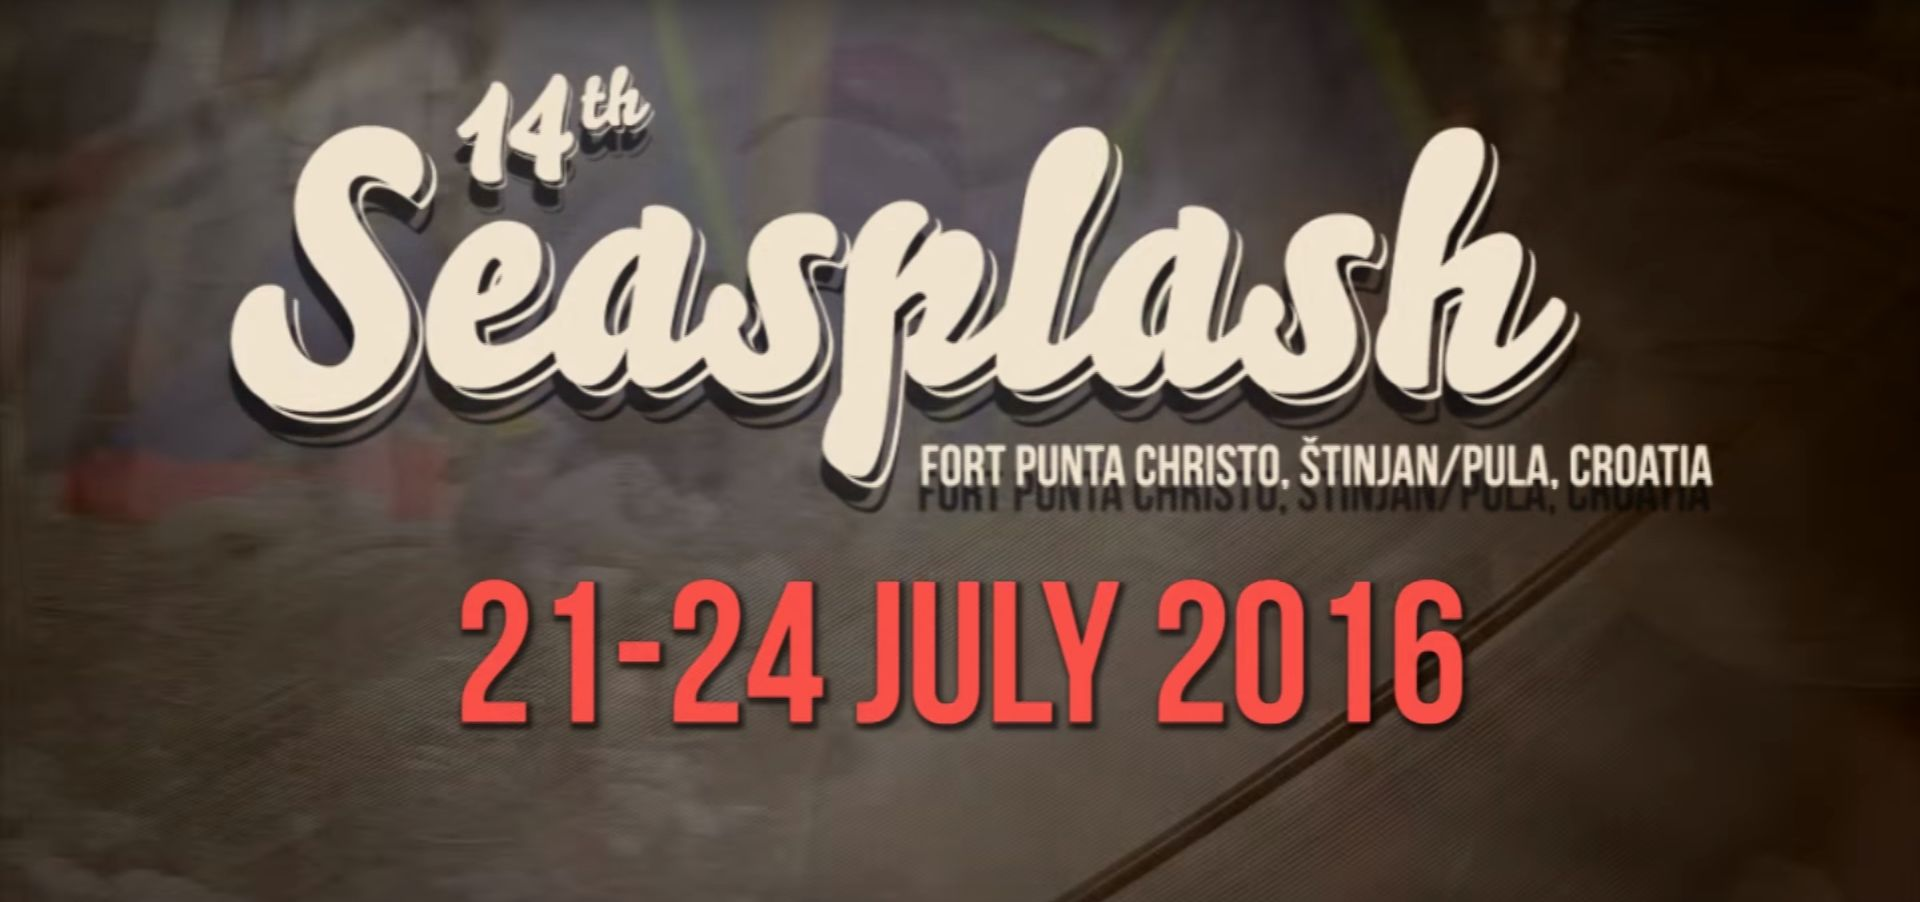 VIDEO: U Puli počeo 14. Seasplash festival